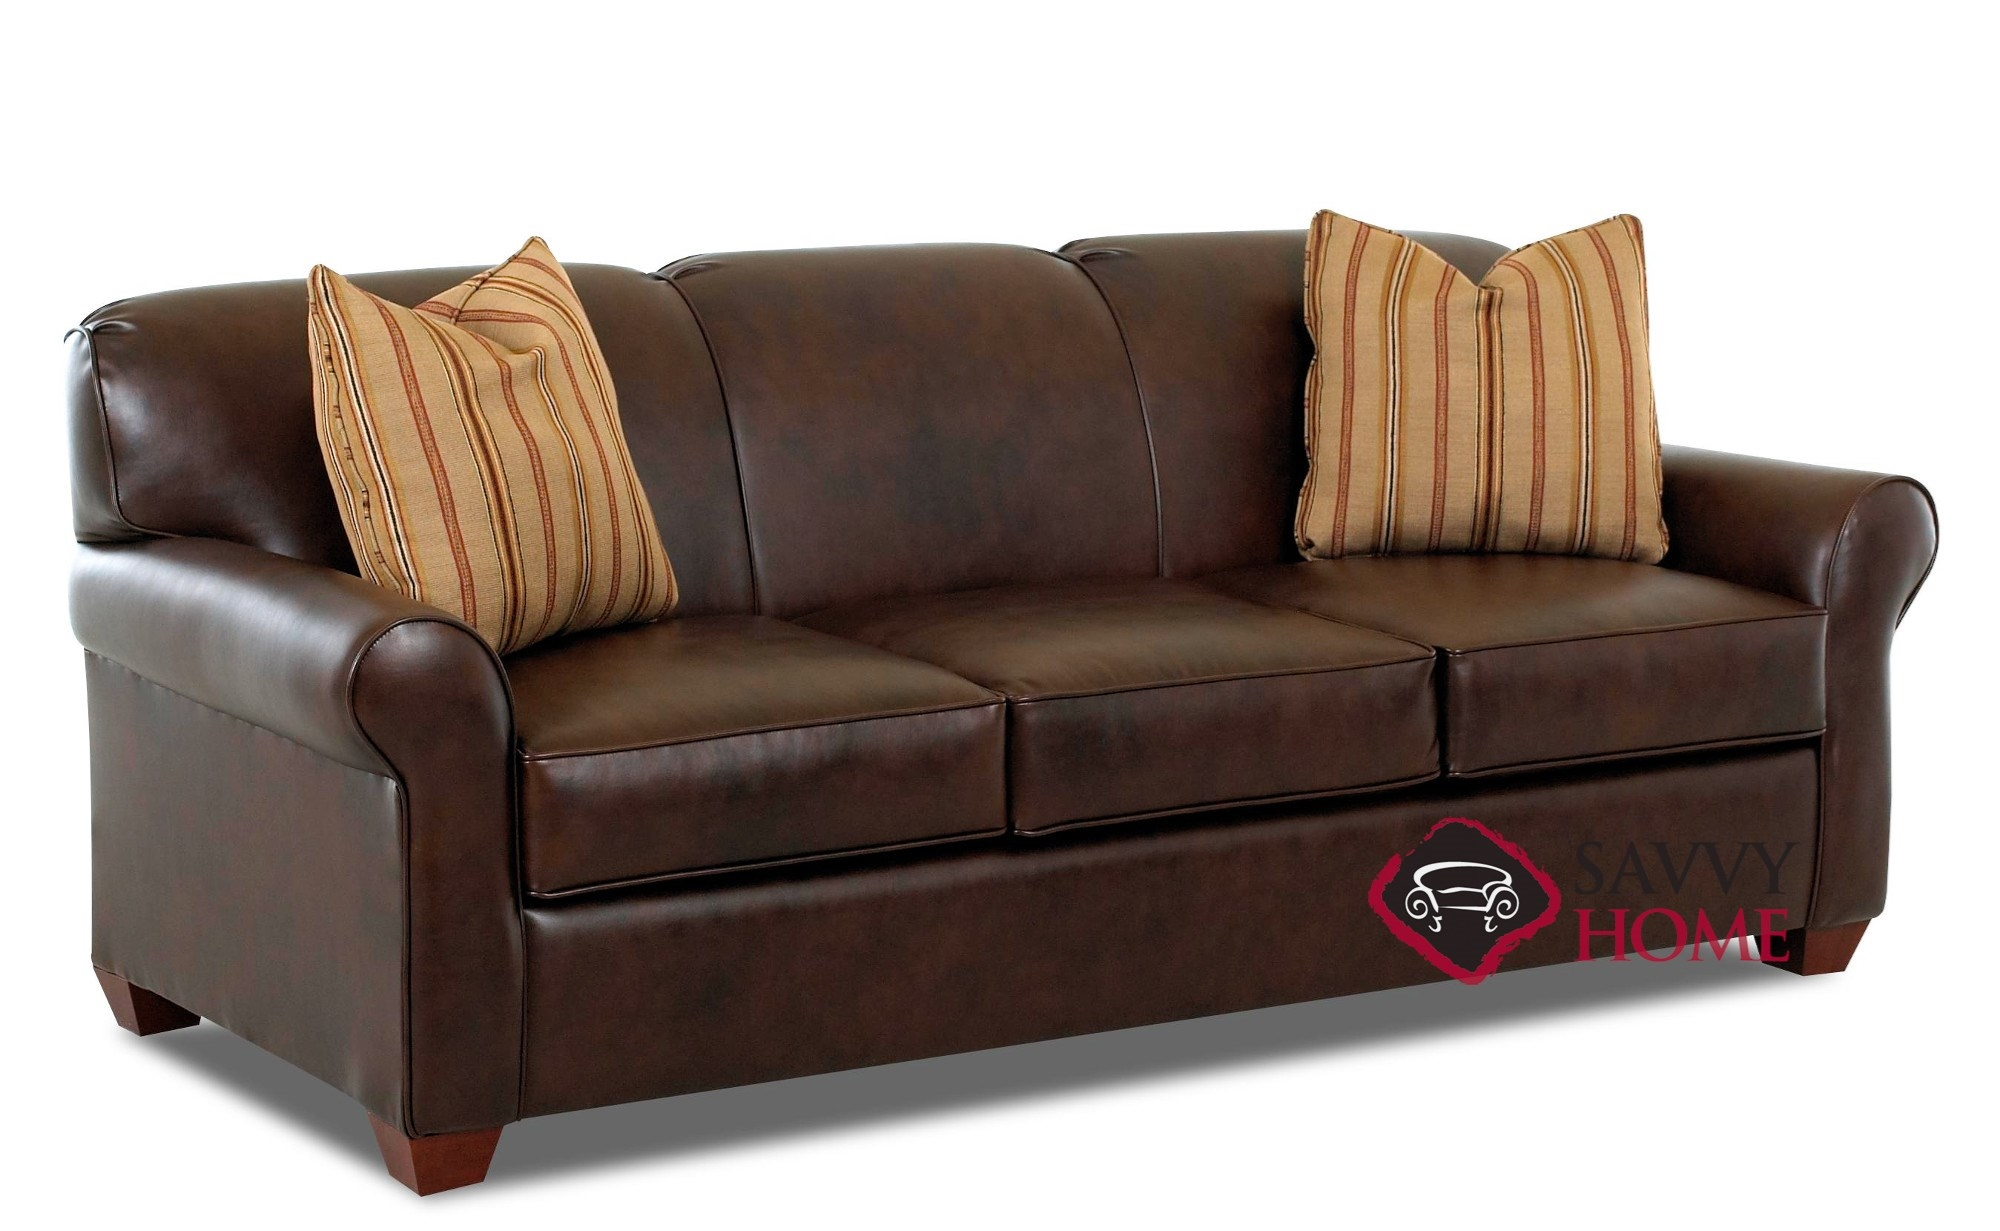 calgary leather sleeper sofas queen by savvy is fully customizable by you. Black Bedroom Furniture Sets. Home Design Ideas